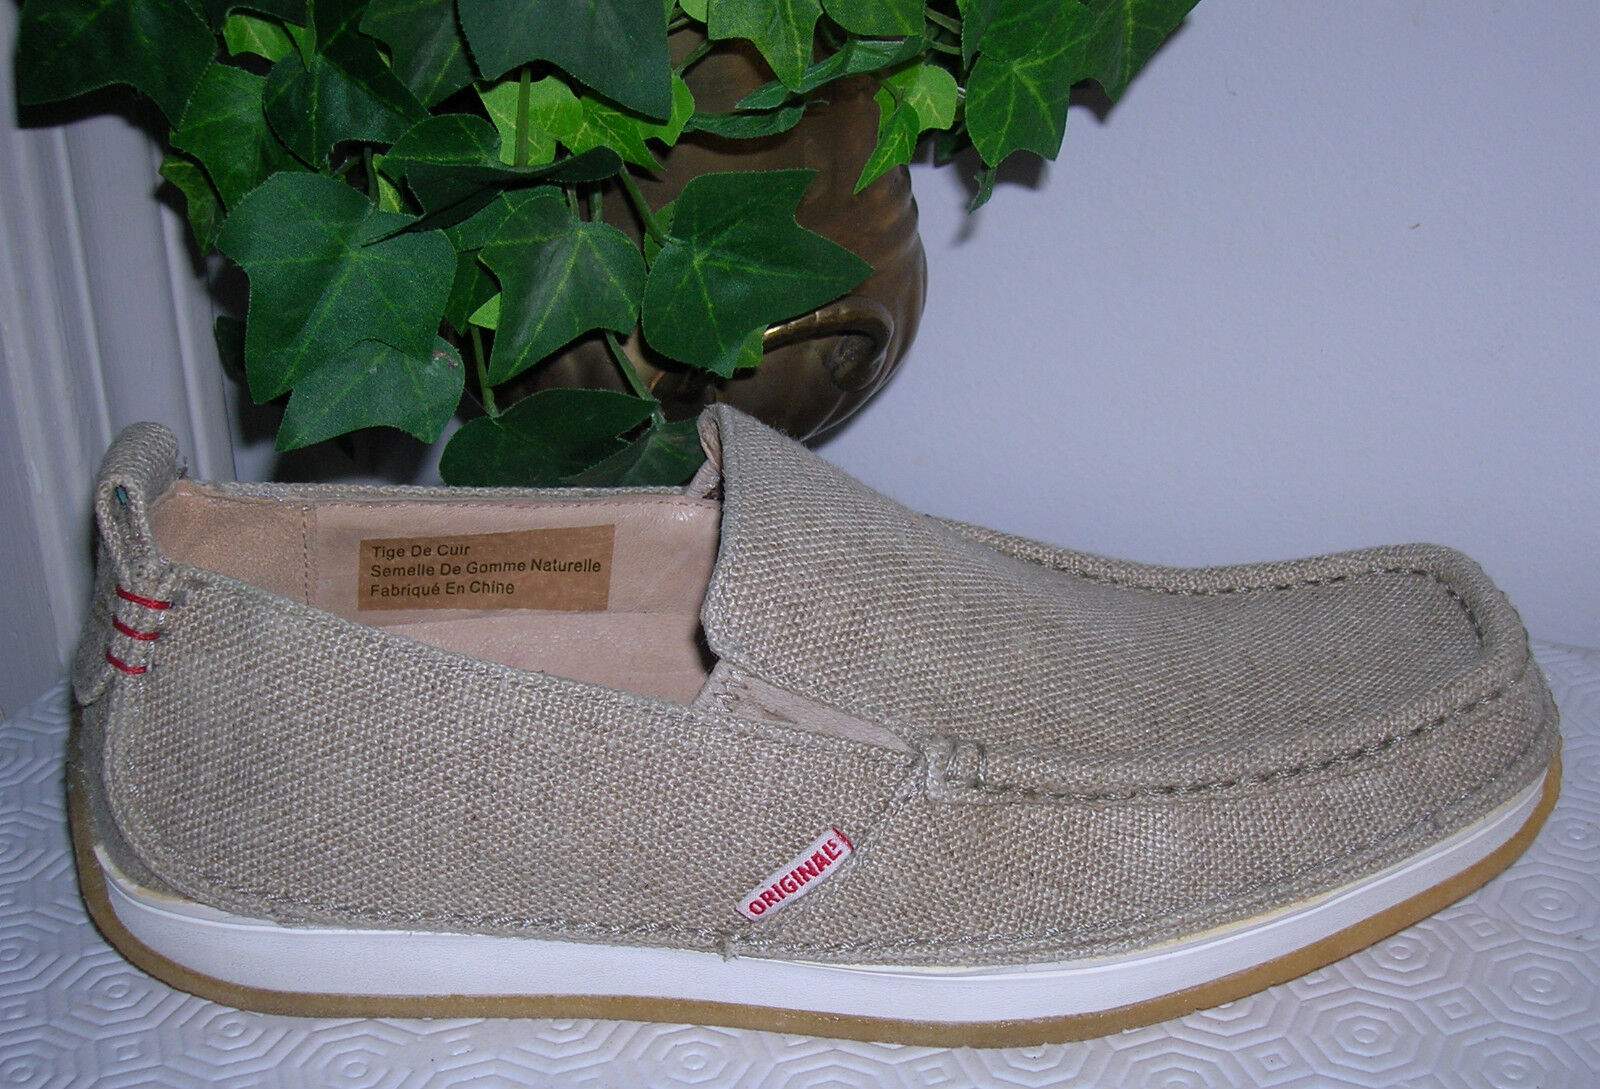 Clarks Originals Wallabee Tabas Loafers Casual Shoes Mens(men's)Size 8 M(sz8)new